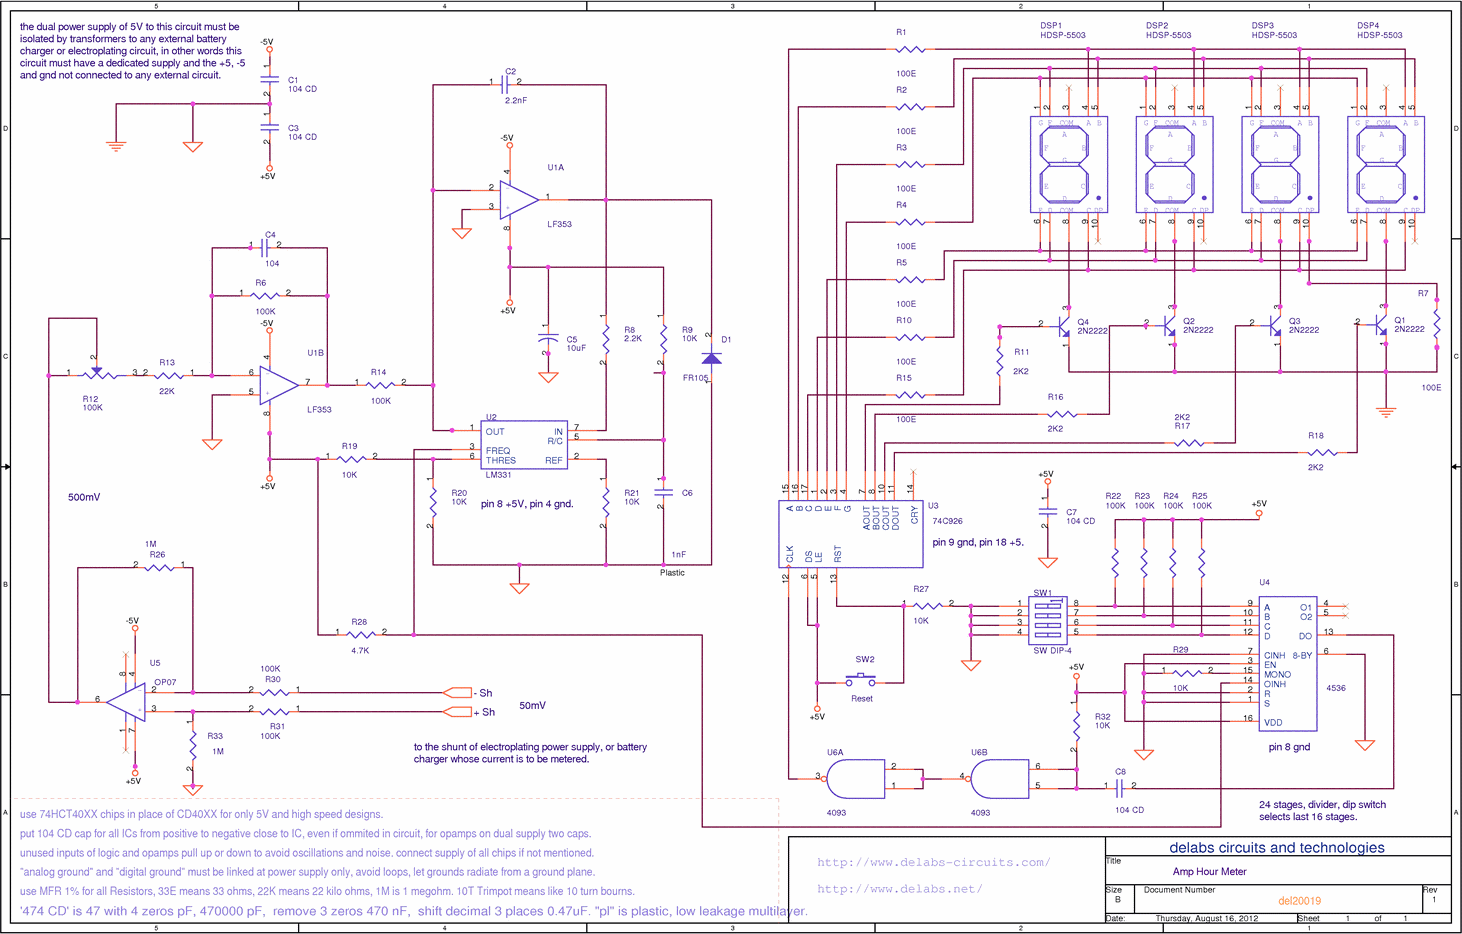 Circuits Delabs Technologies Part 3 The Lm3914 Is A Monolithic Integrated Circuit That Senses Analog Digital Timers